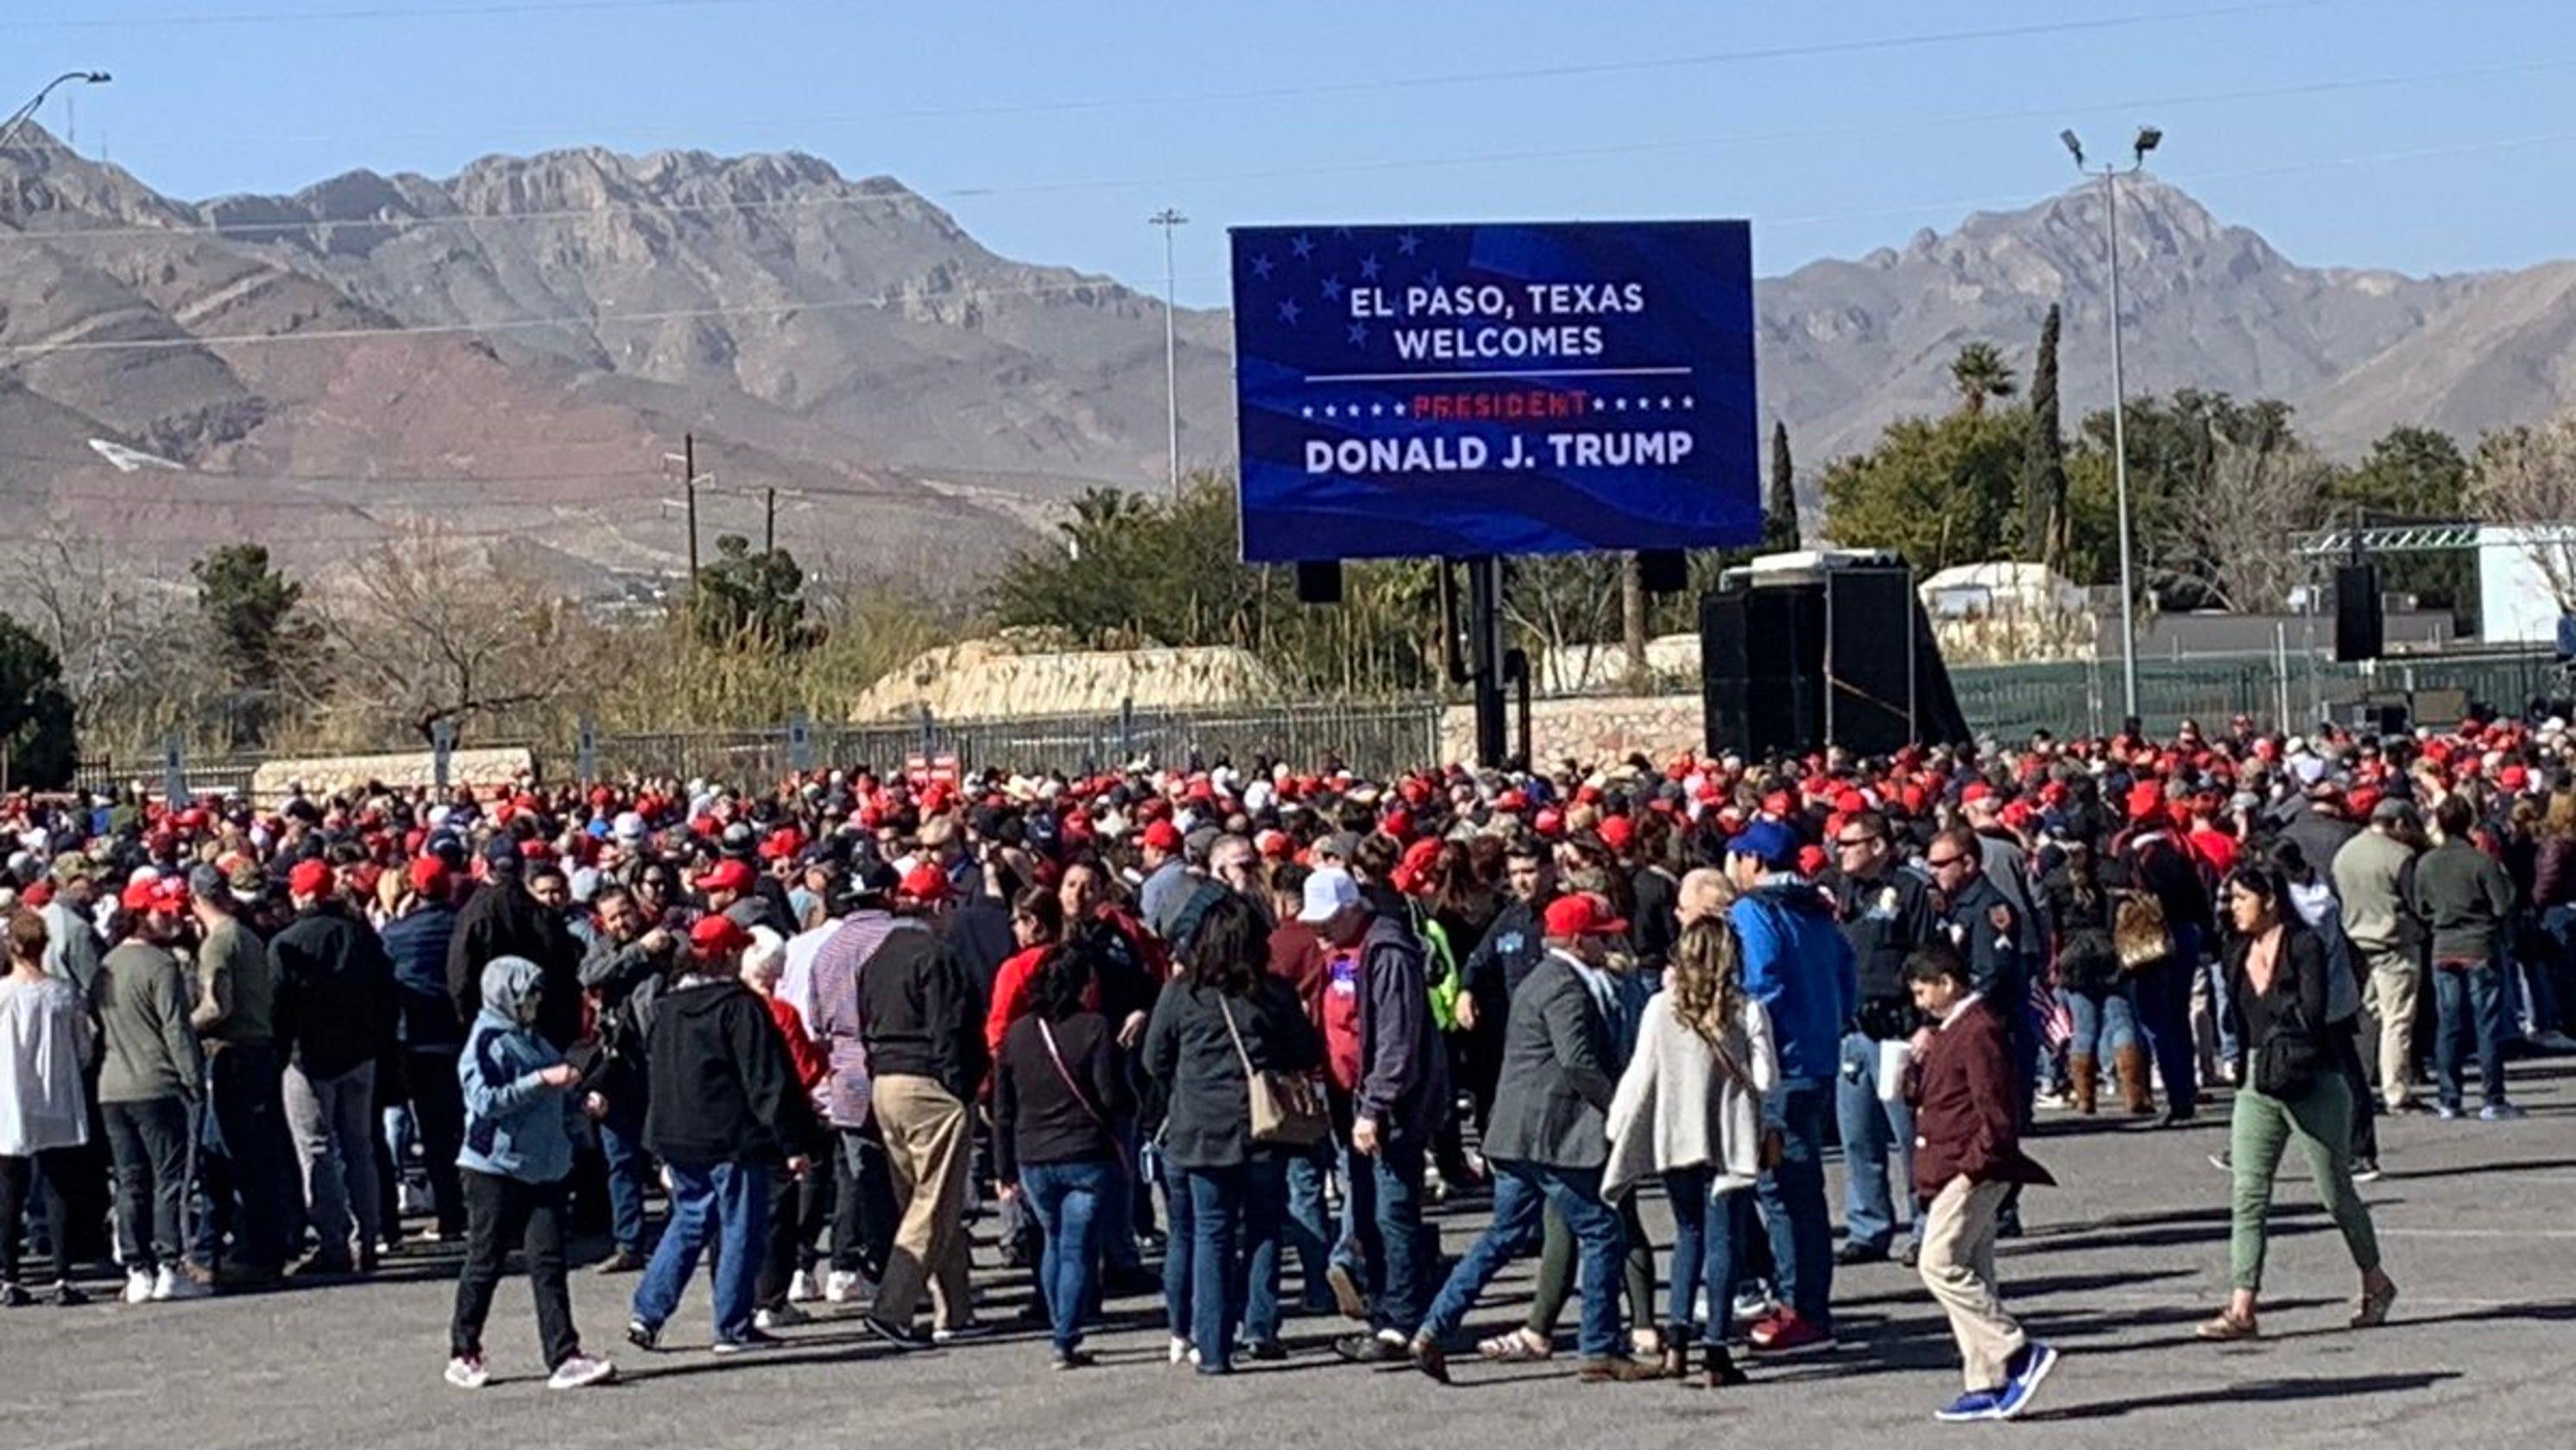 Trump and Beto O' Rourke held dueling El Paso rallies on border wall